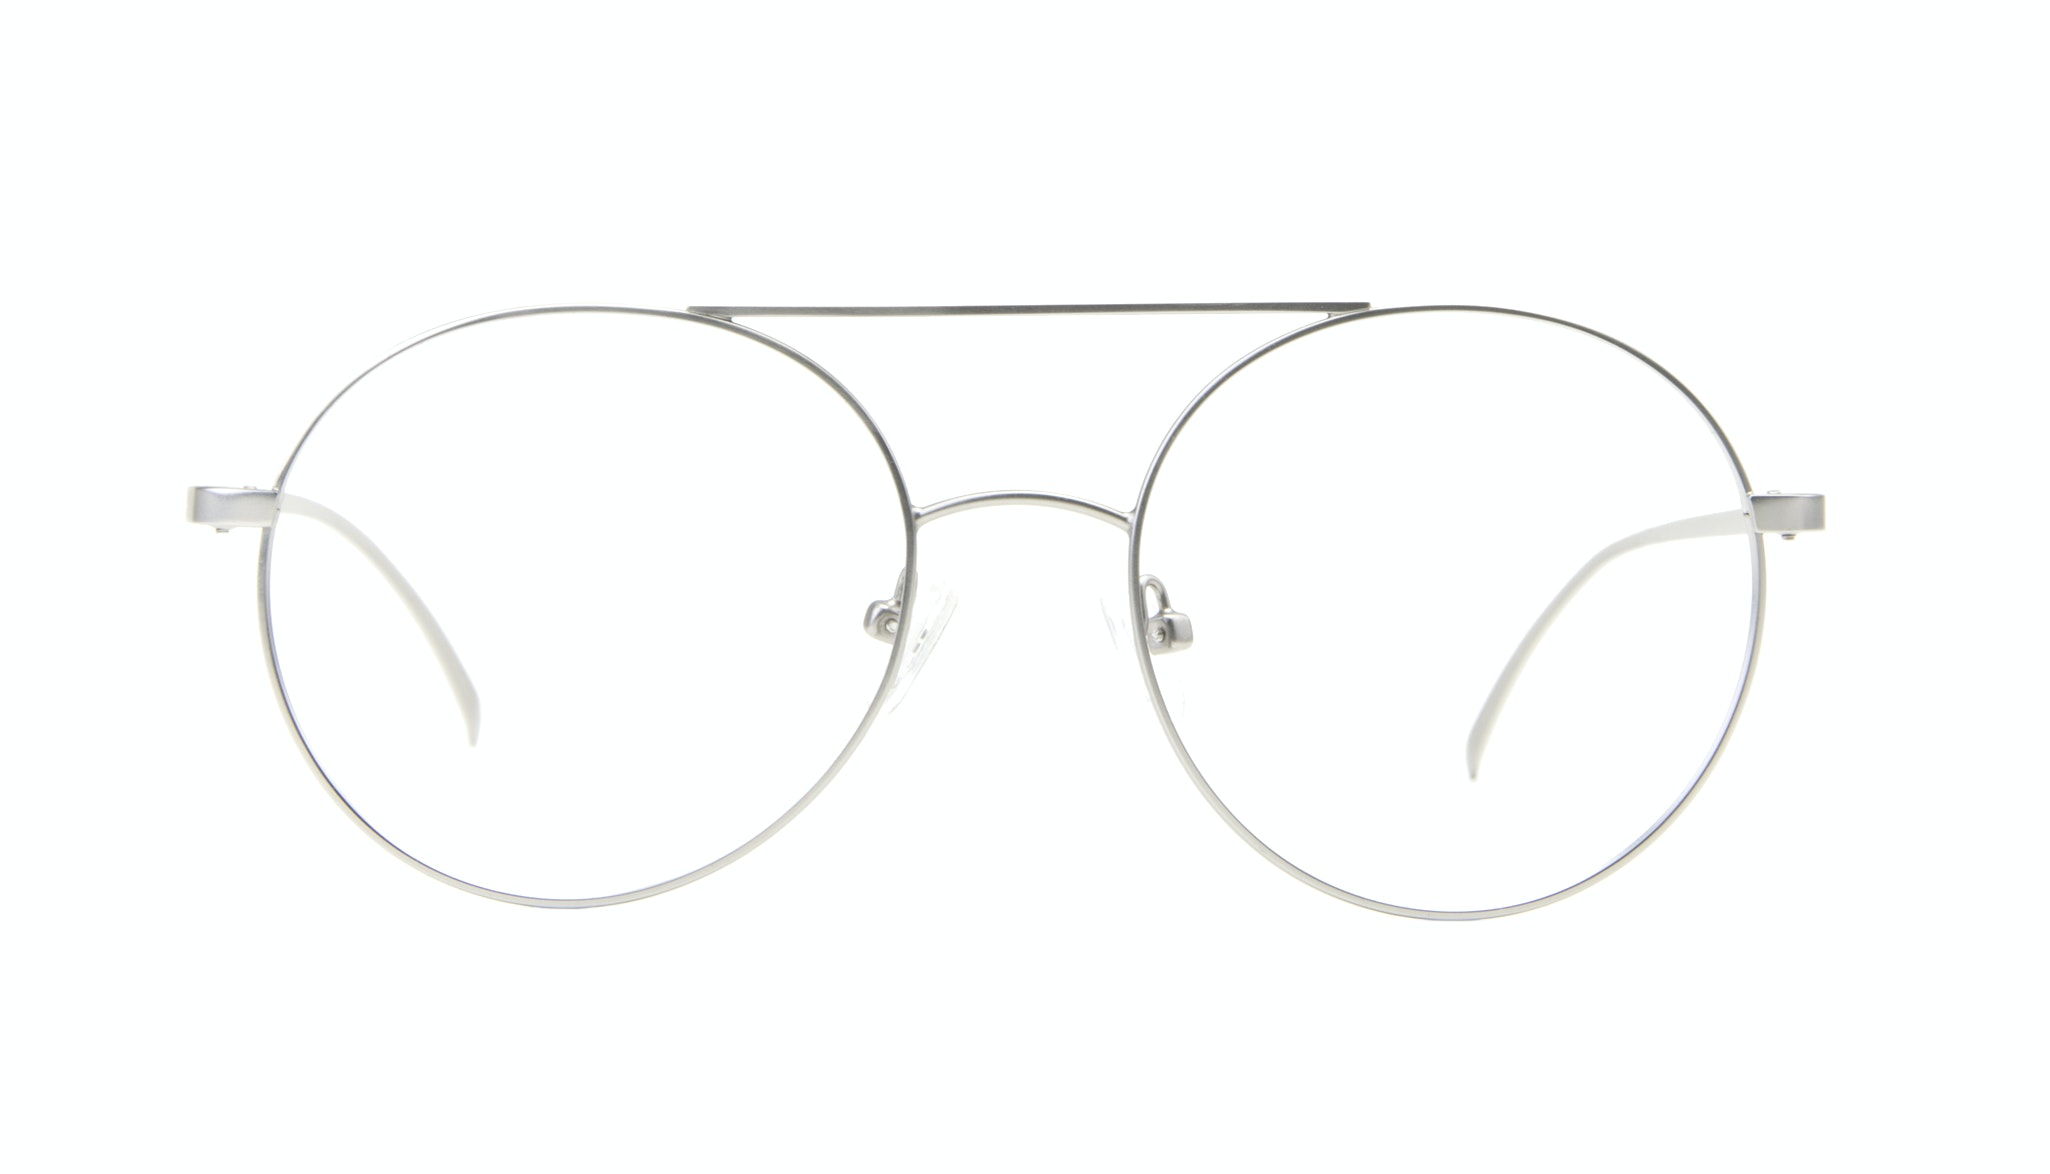 Affordable Fashion Glasses Aviator Round Eyeglasses Women Baby Steel Front